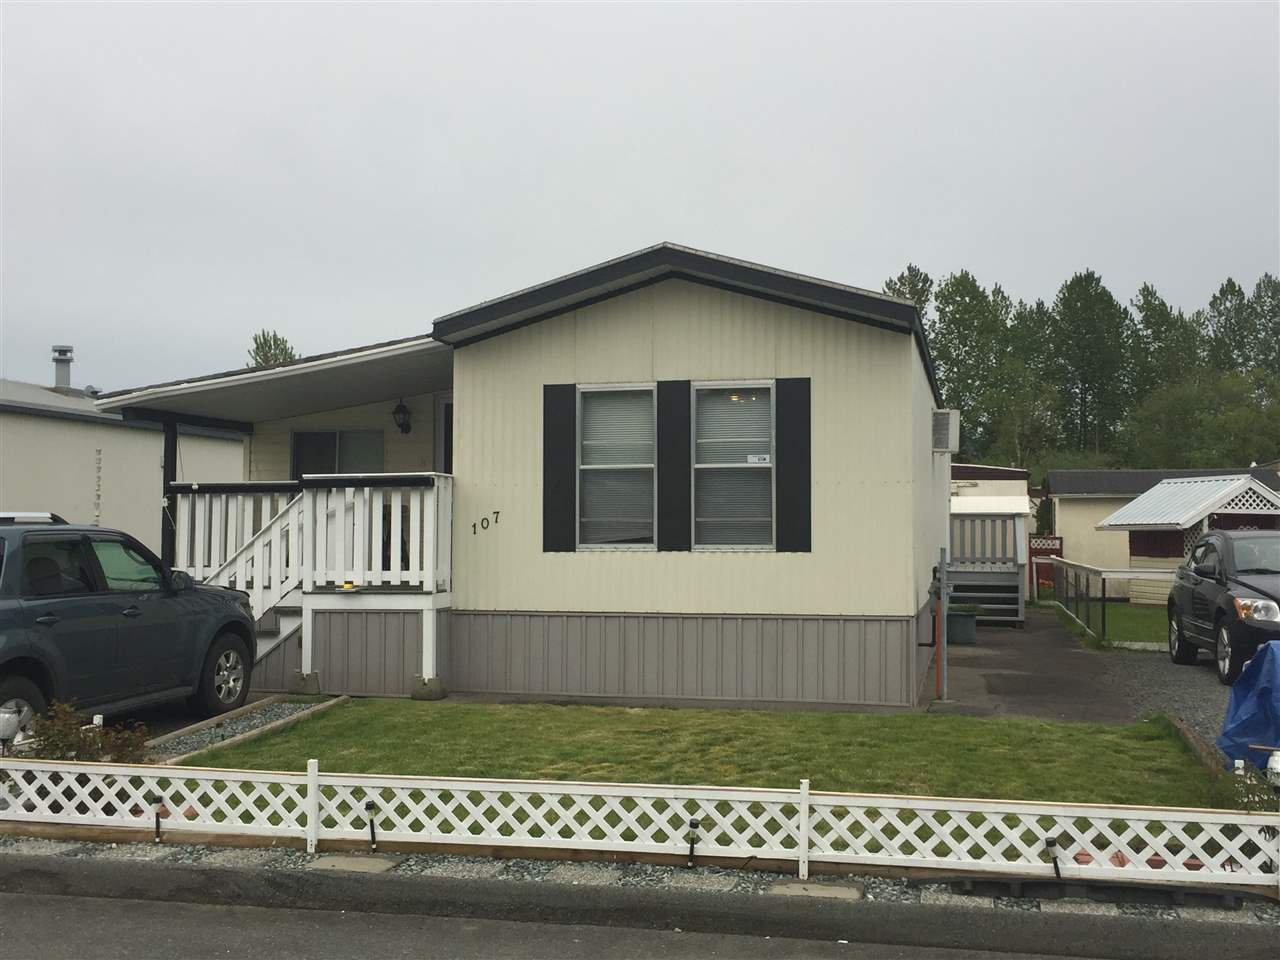 """Photo 4: Photos: 107 3300 HORN Street in Abbotsford: Central Abbotsford Manufactured Home for sale in """"Georgian Park"""" : MLS®# R2162329"""